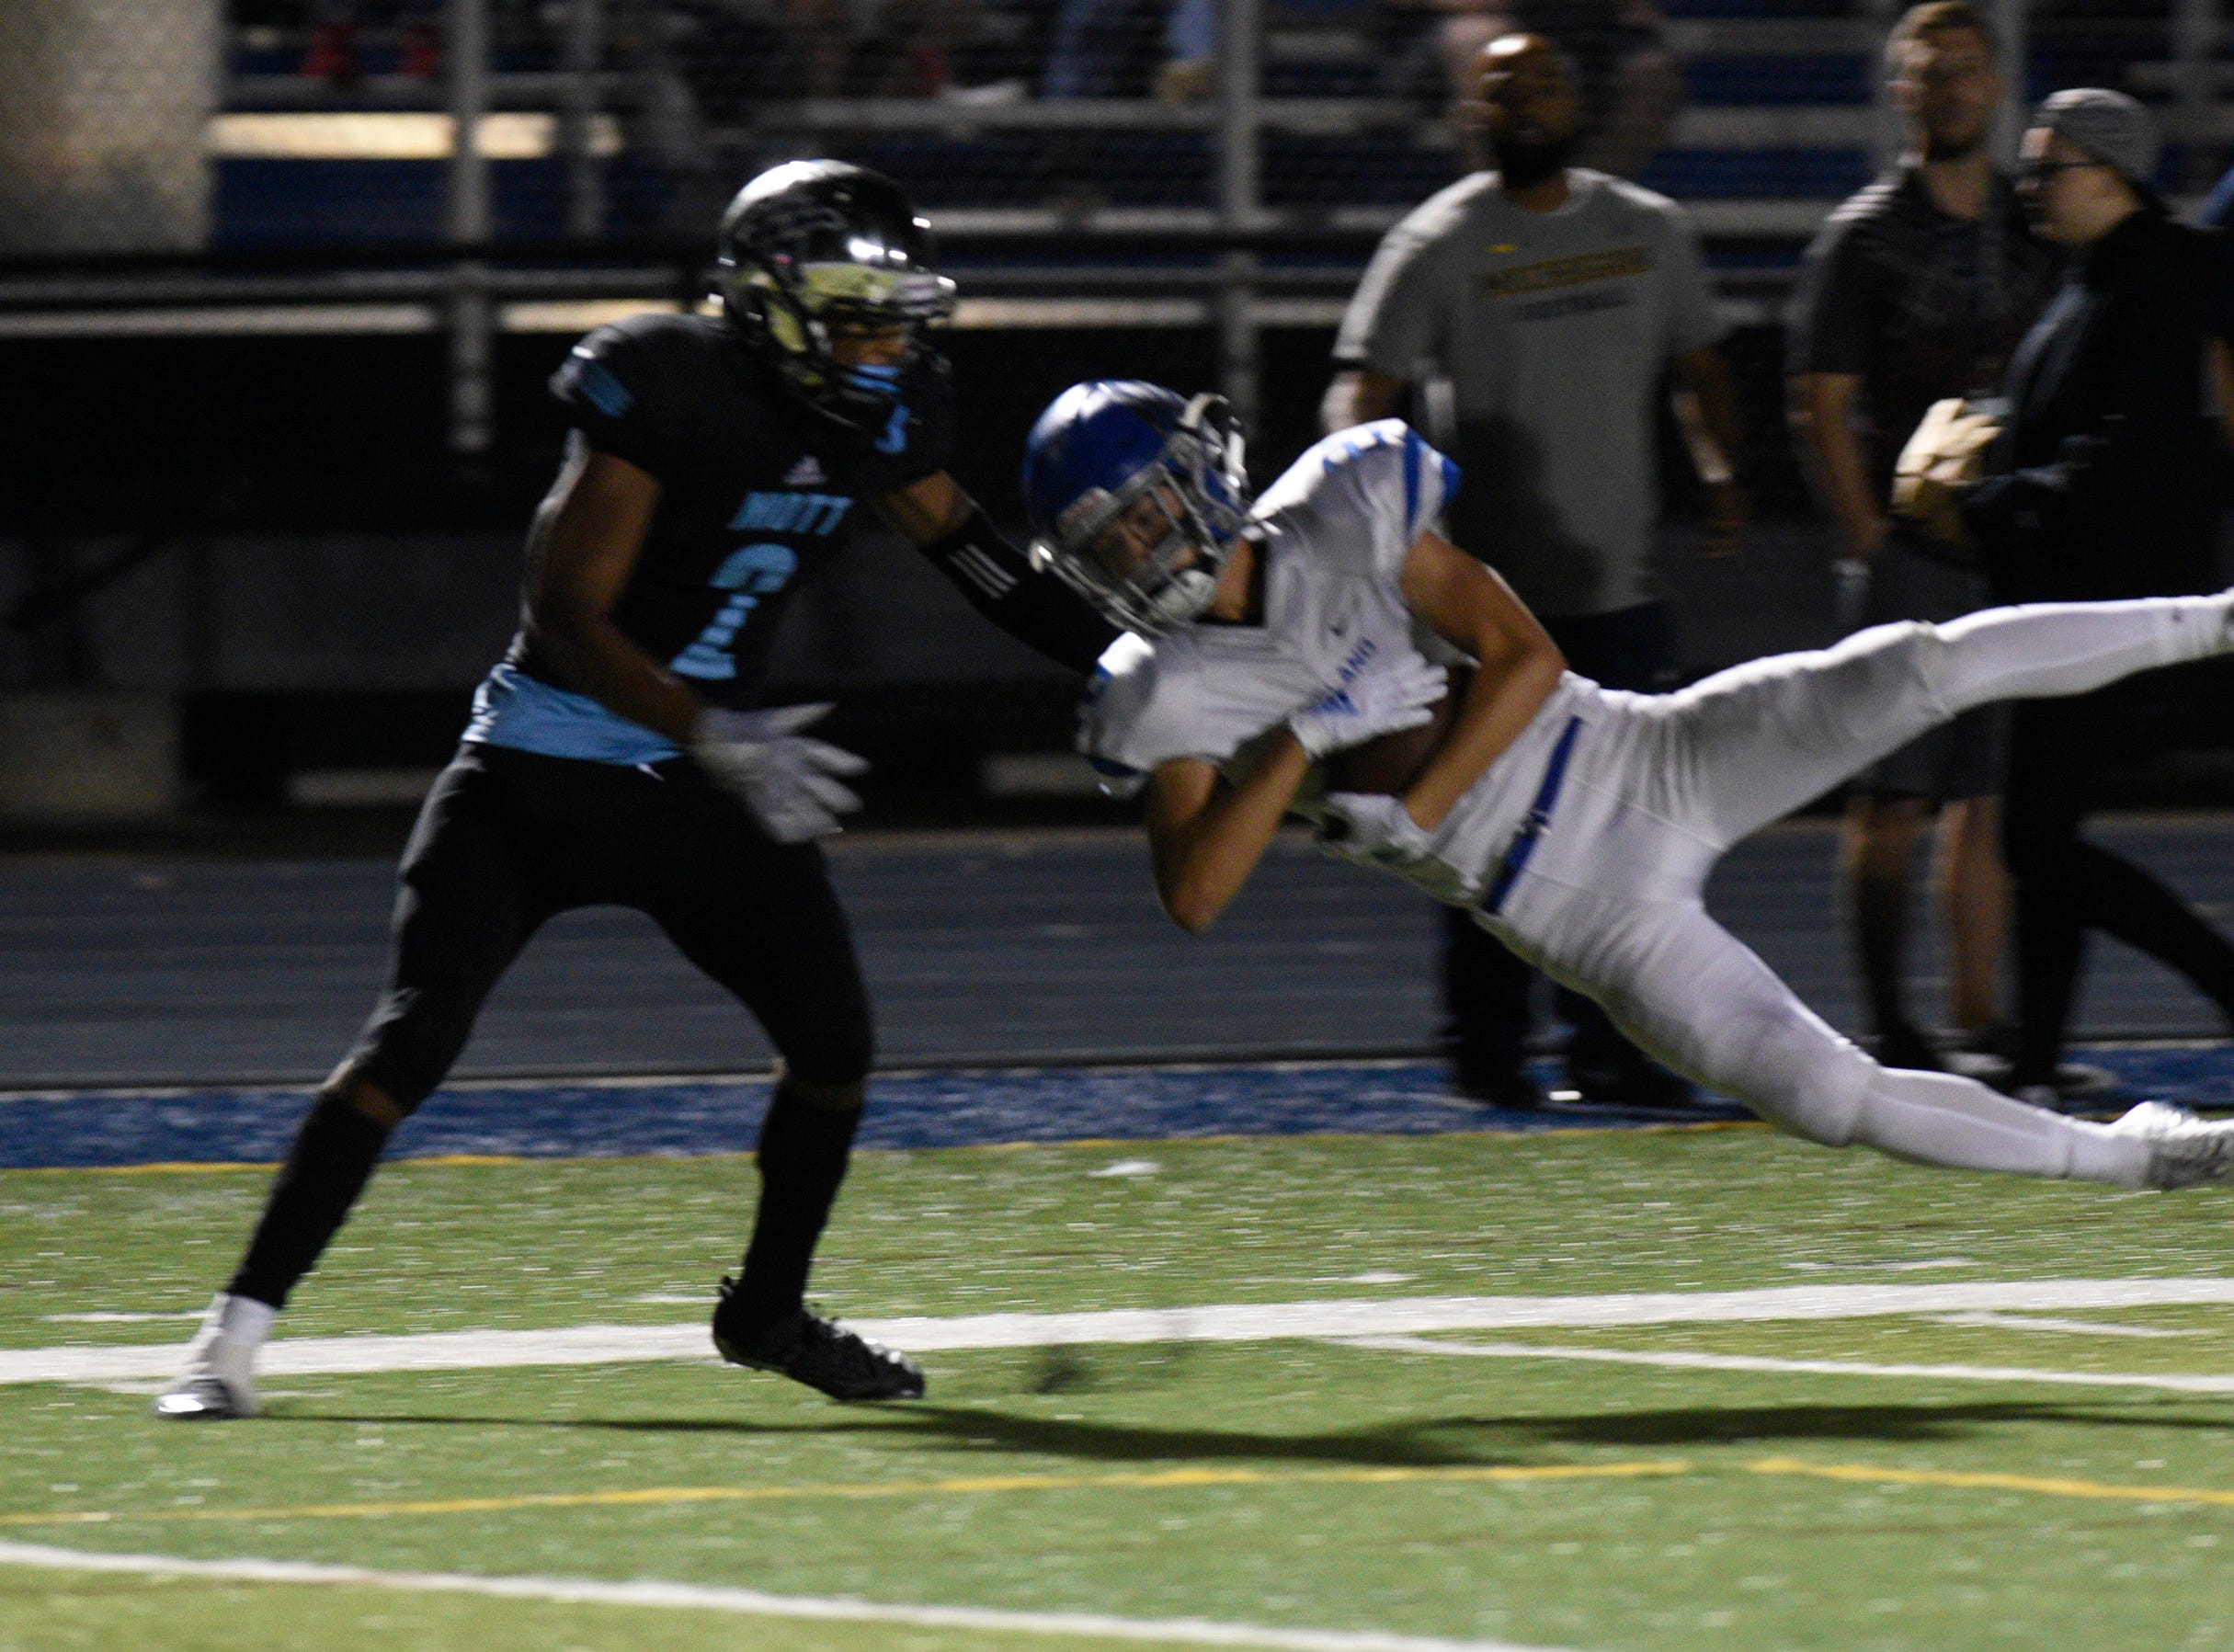 lakeland's Leo Skupin intercepts a pass intended for Waterford Mott's Kamariell Manley.